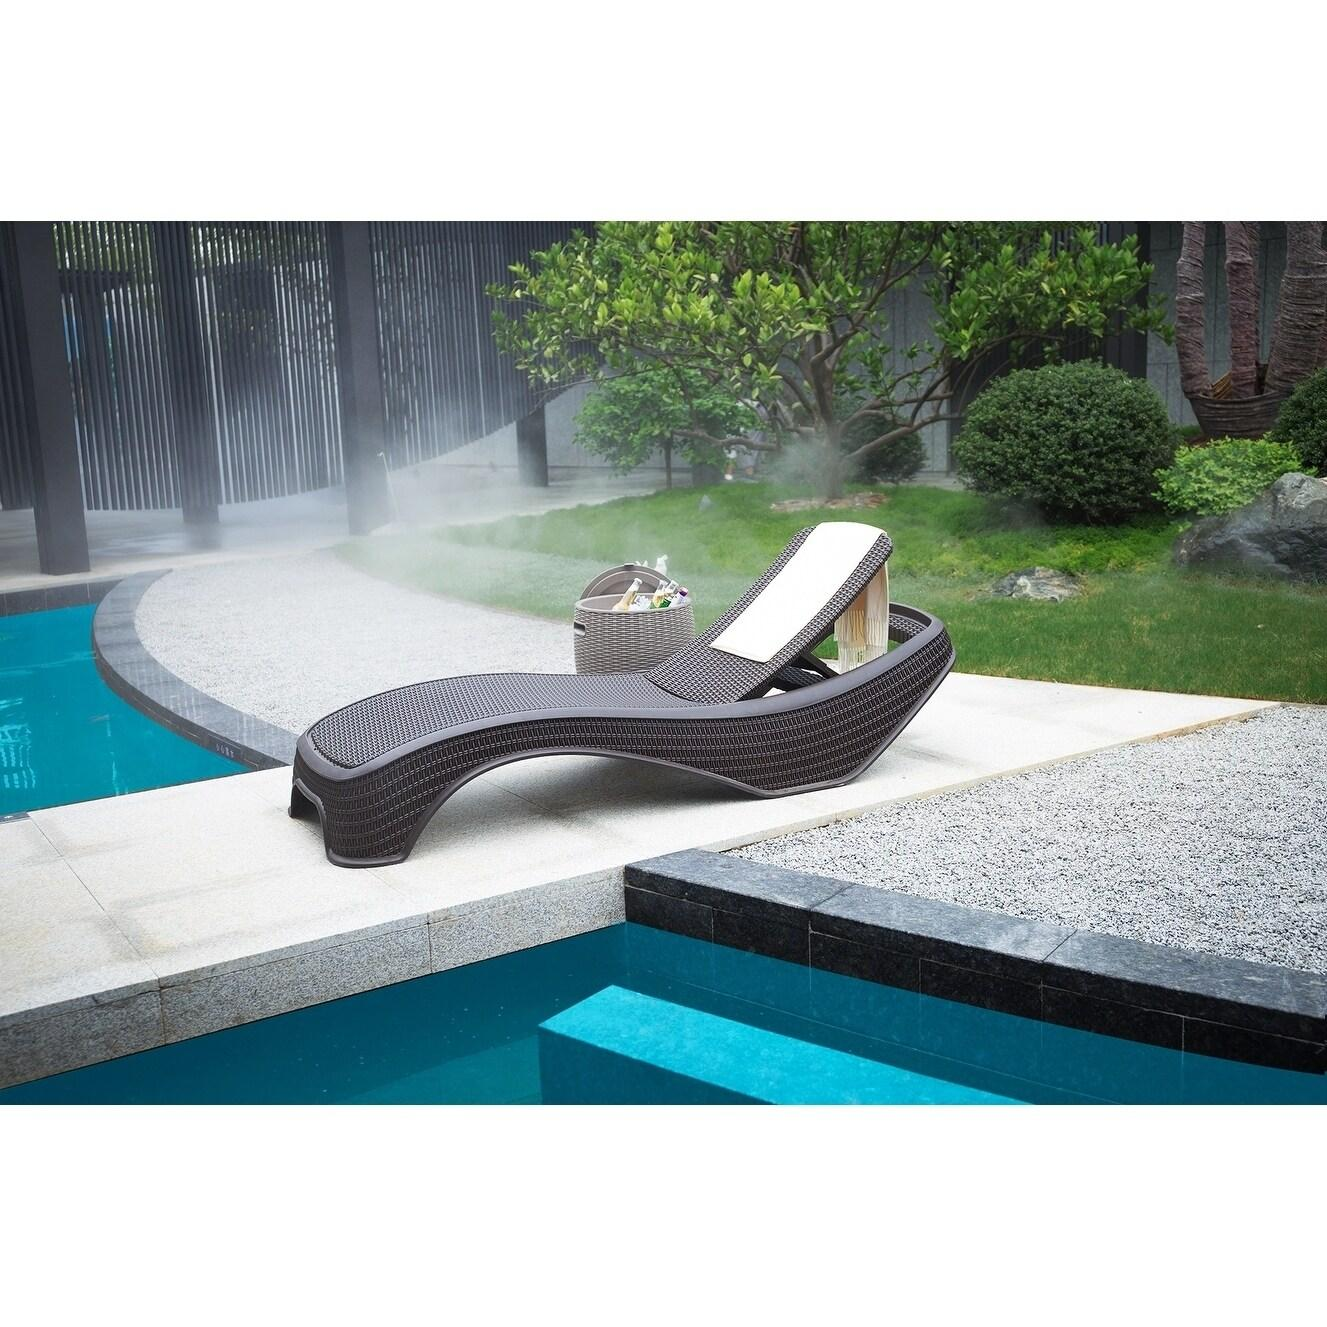 Outdoor Adjustable Chaise Lounges Set of 2 Lounges by Moda Furnishings - Grey